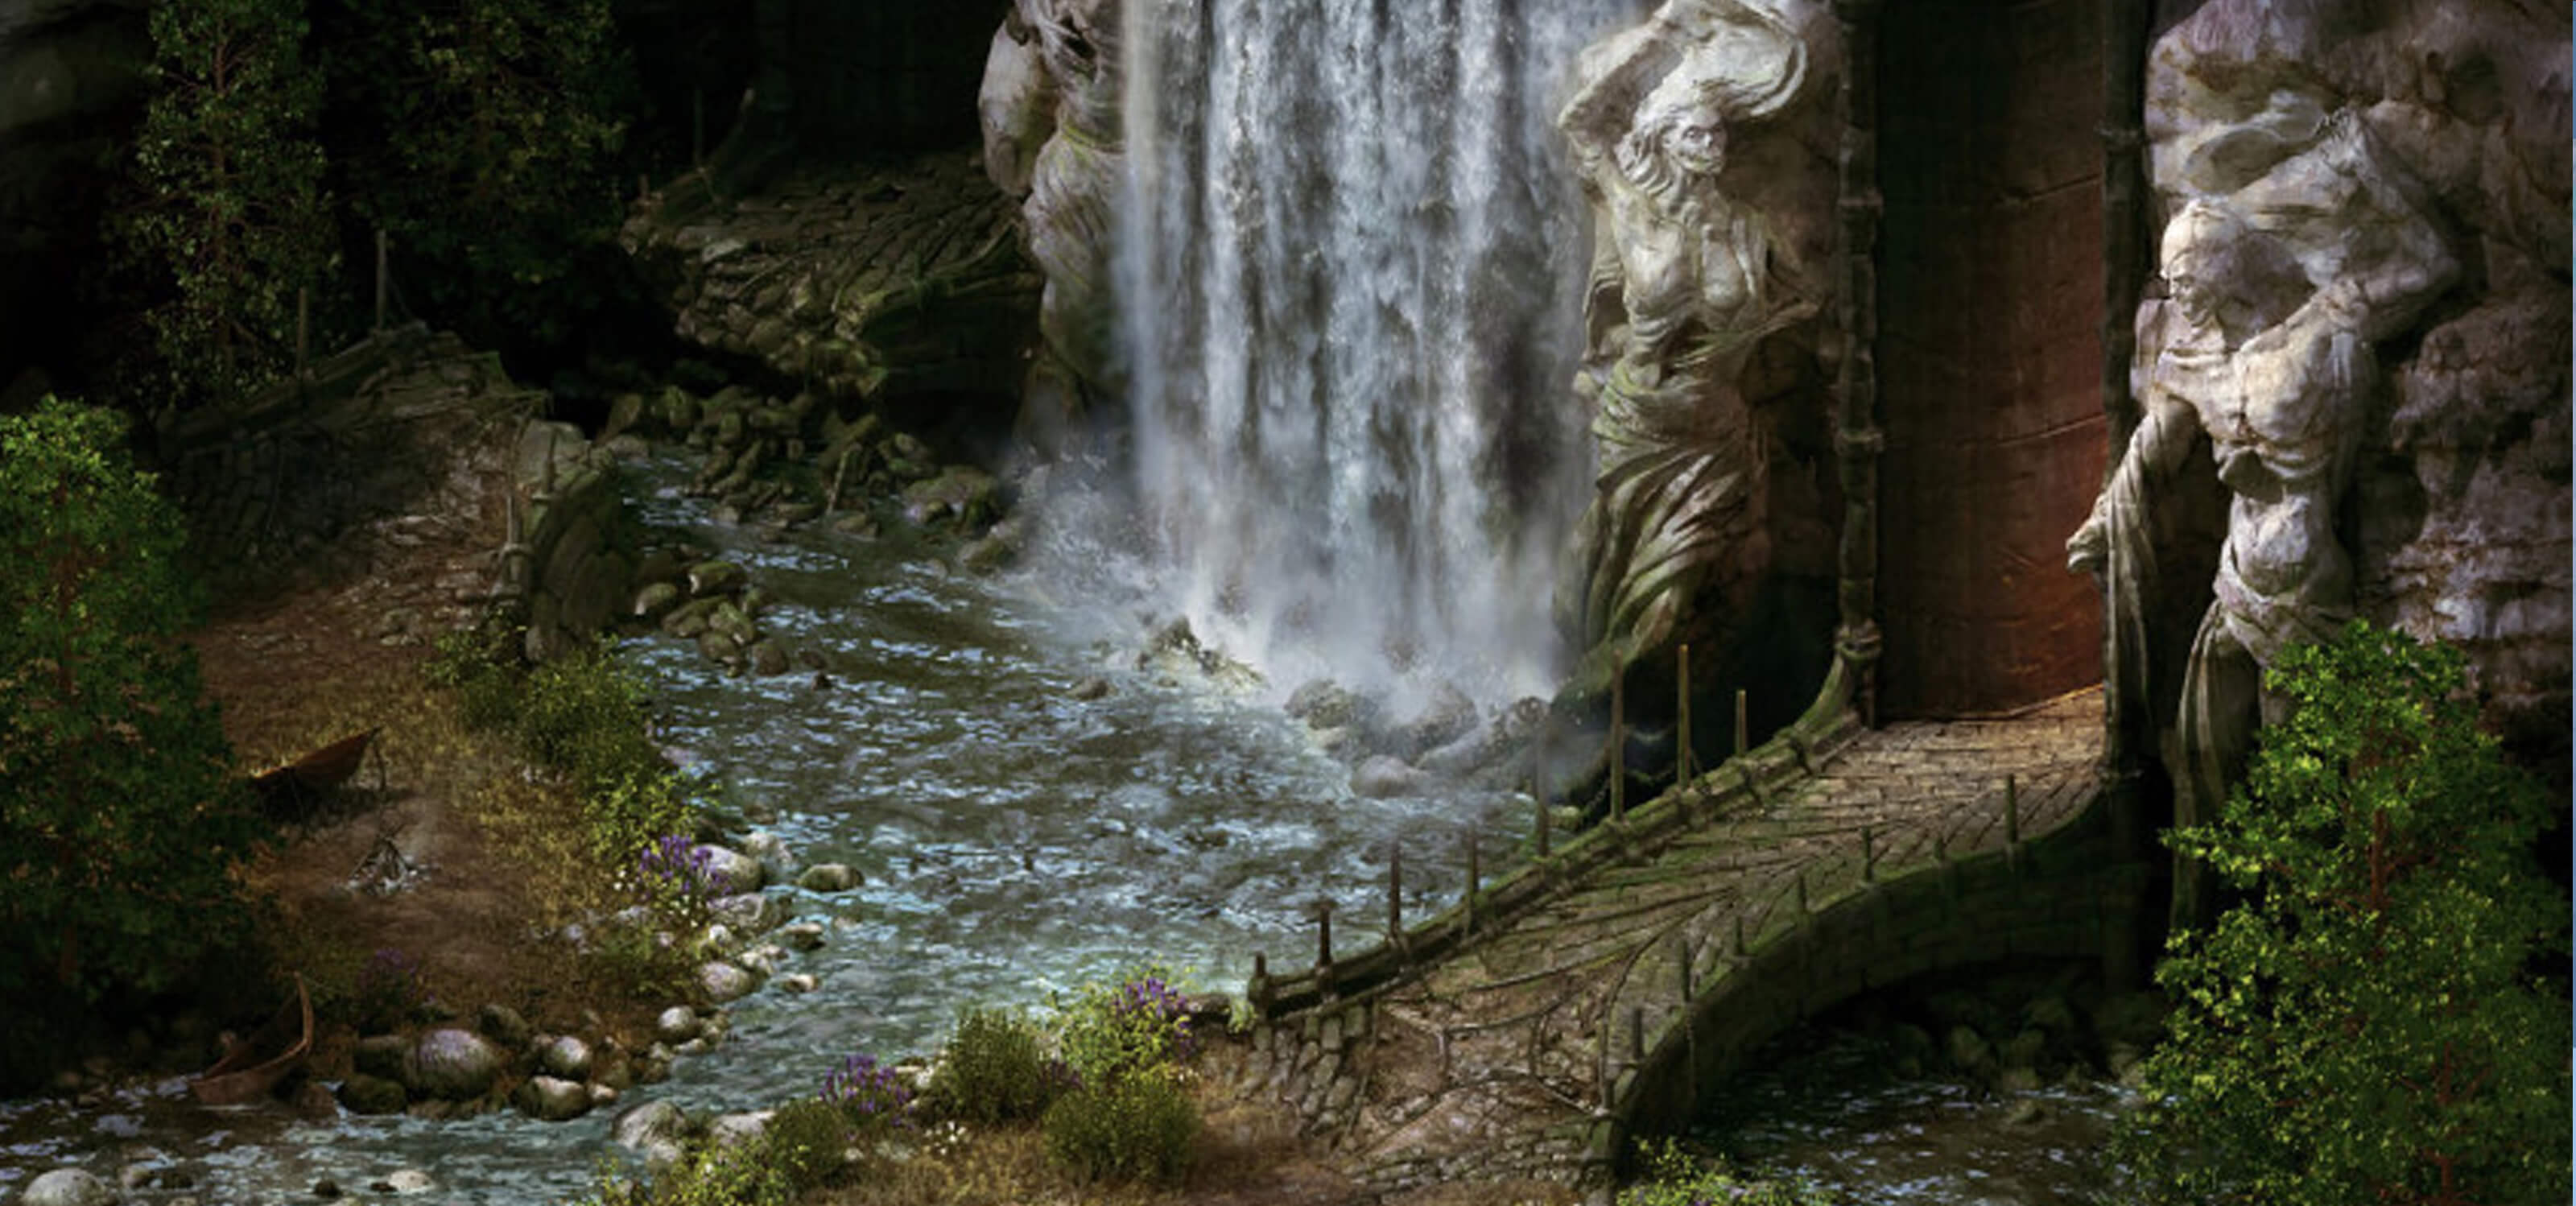 Illustration from Project Eternity of a waterfall and path leading to a massive door in a stone wall